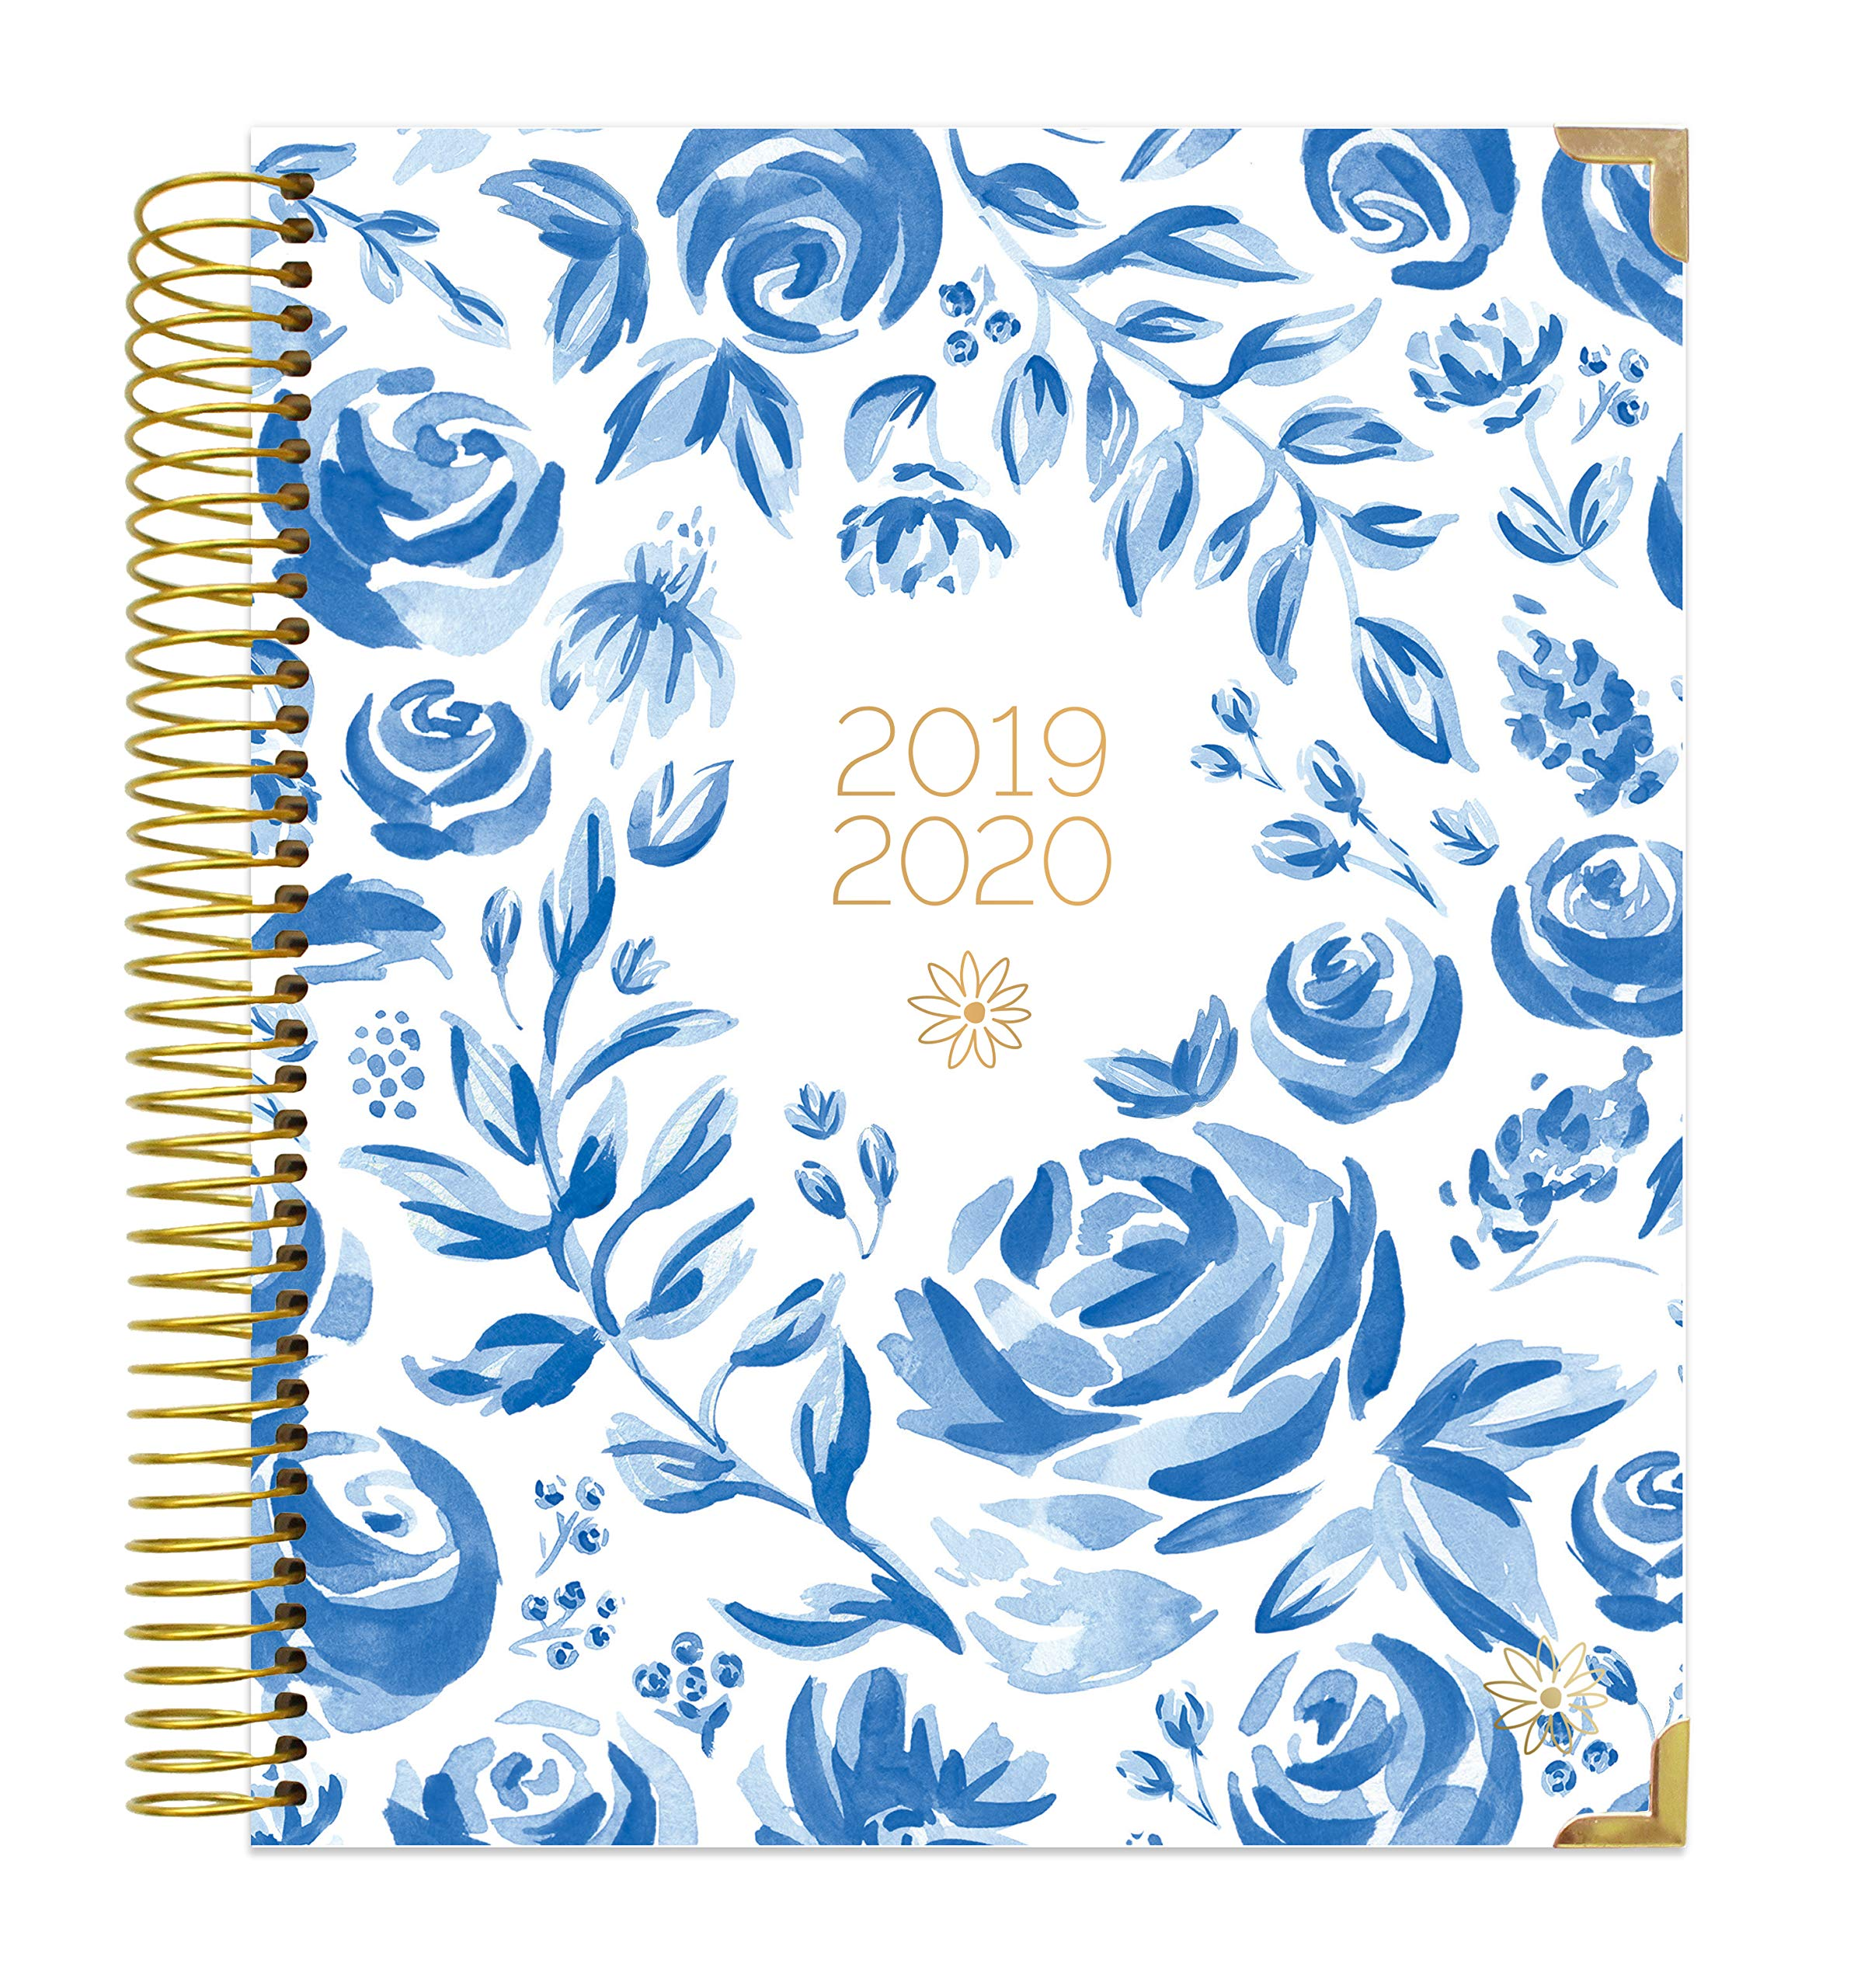 bloom daily planners 2019-2020 Hardcover Academic Year Vision Planner (August 2019 - July 2020) - Monthly and Weekly Column View Calendar Organizer - 7.5'' x 9'' - Blue & White Floral